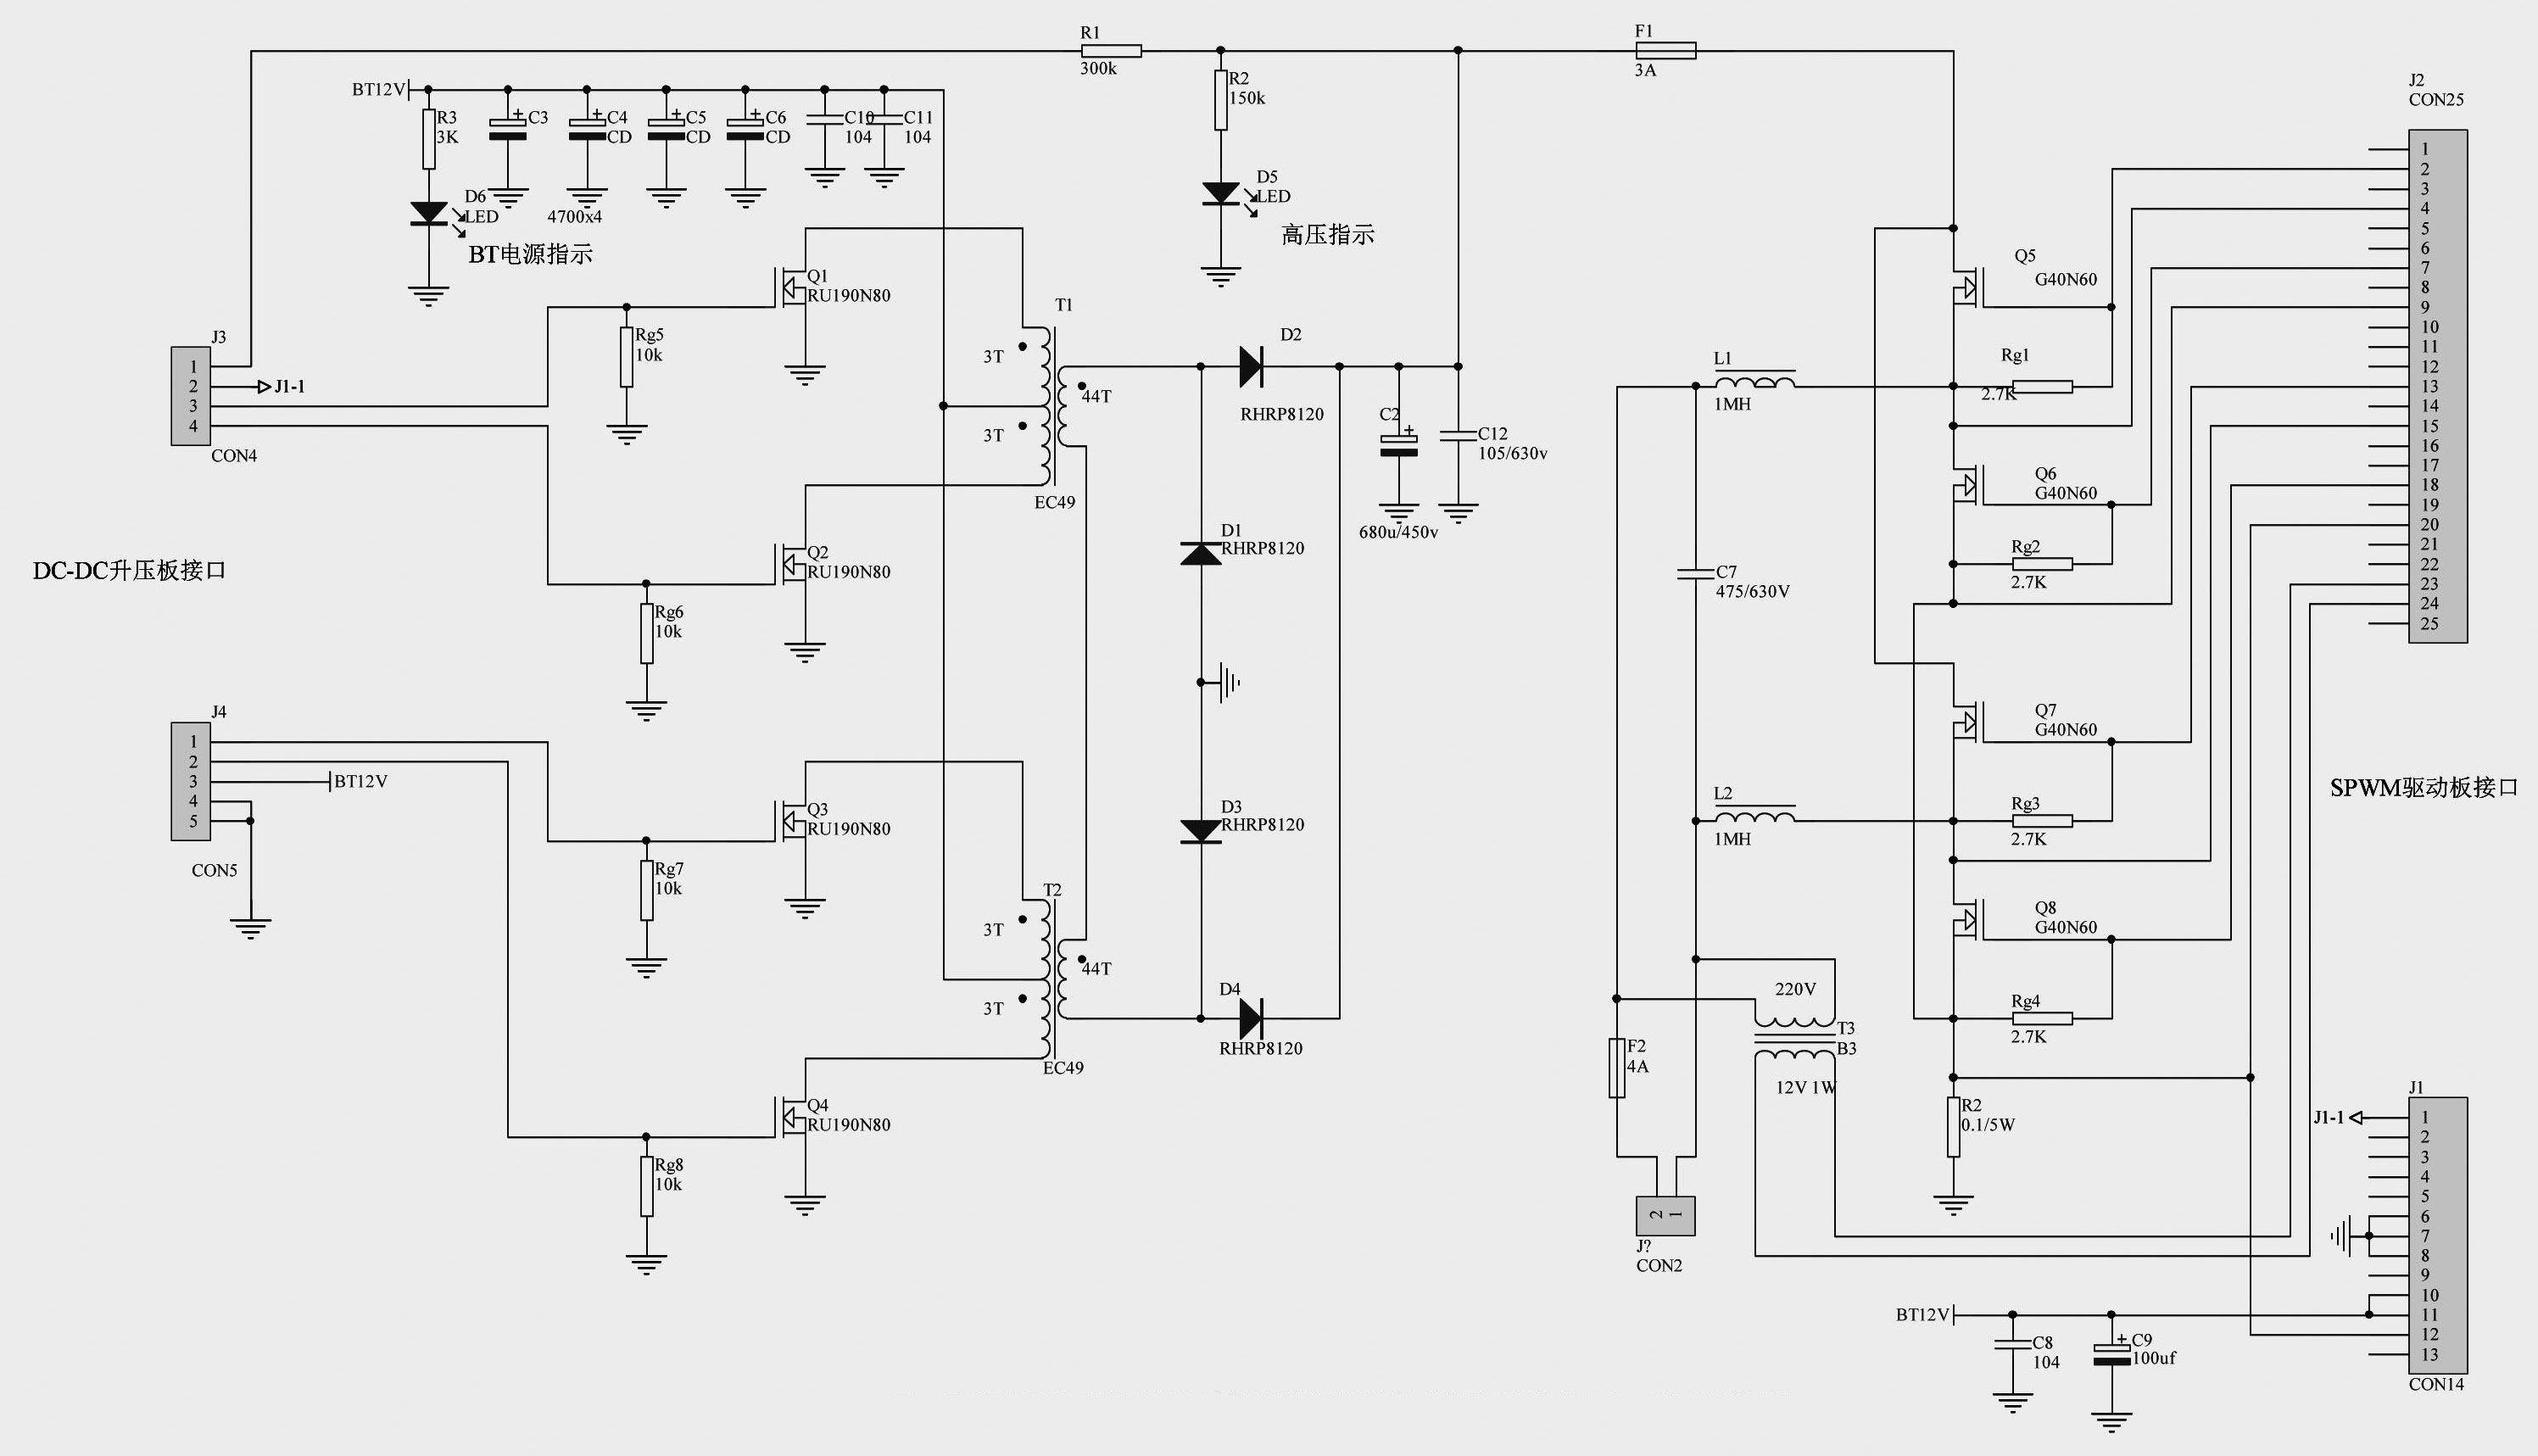 1000 watt inverter master board circuit diagram 100 [ hps ballast wiring diagram ] high pressure sodium ballast 1000 watt ballast wiring diagram at gsmx.co